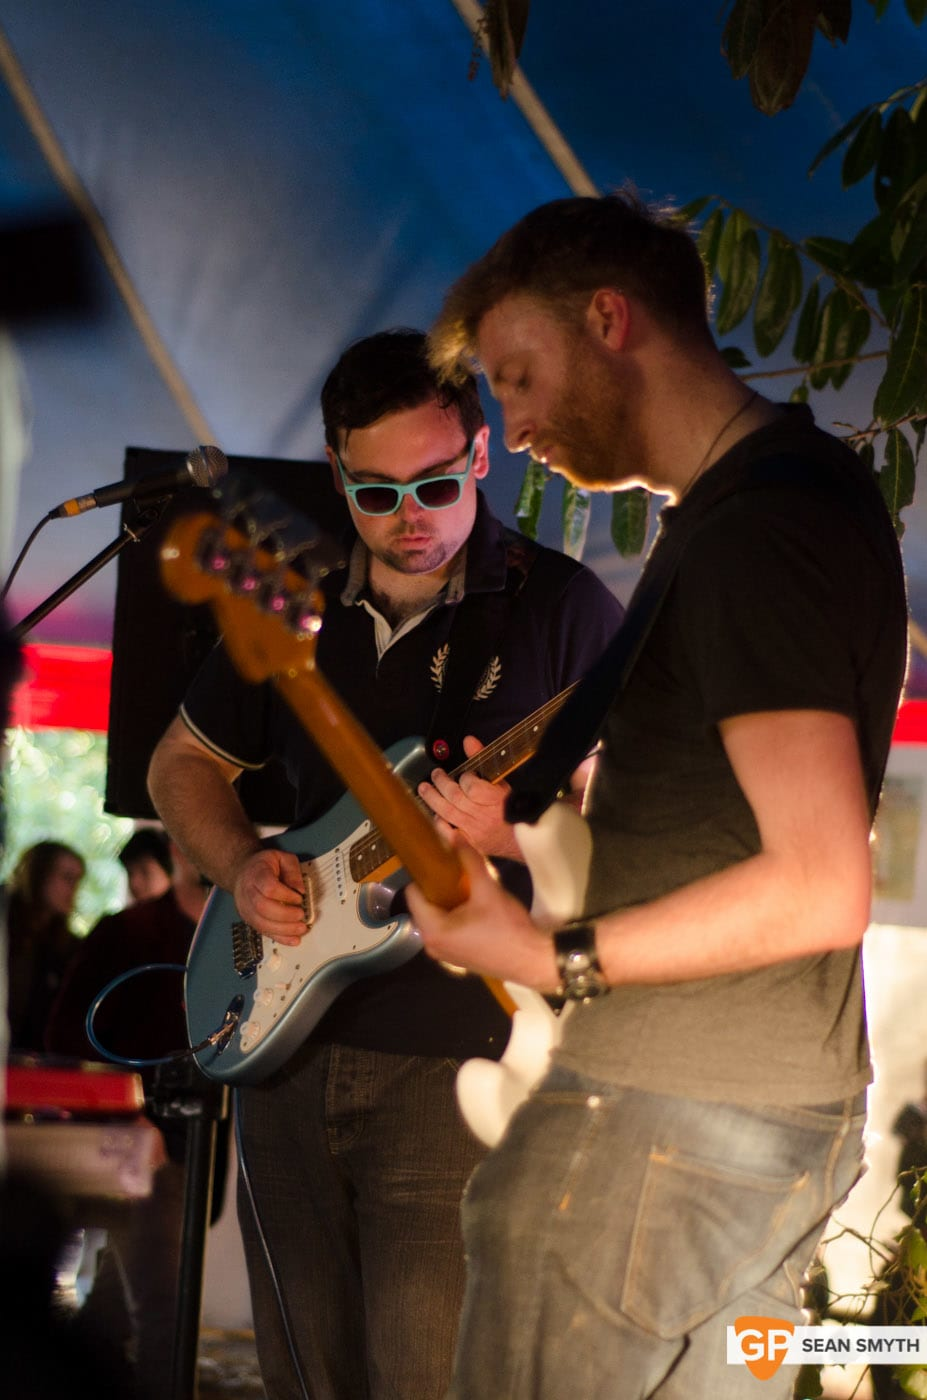 almost-ghosts-sunday-at-vantastival-by-sean-smyth-1-5-14-5-of-49